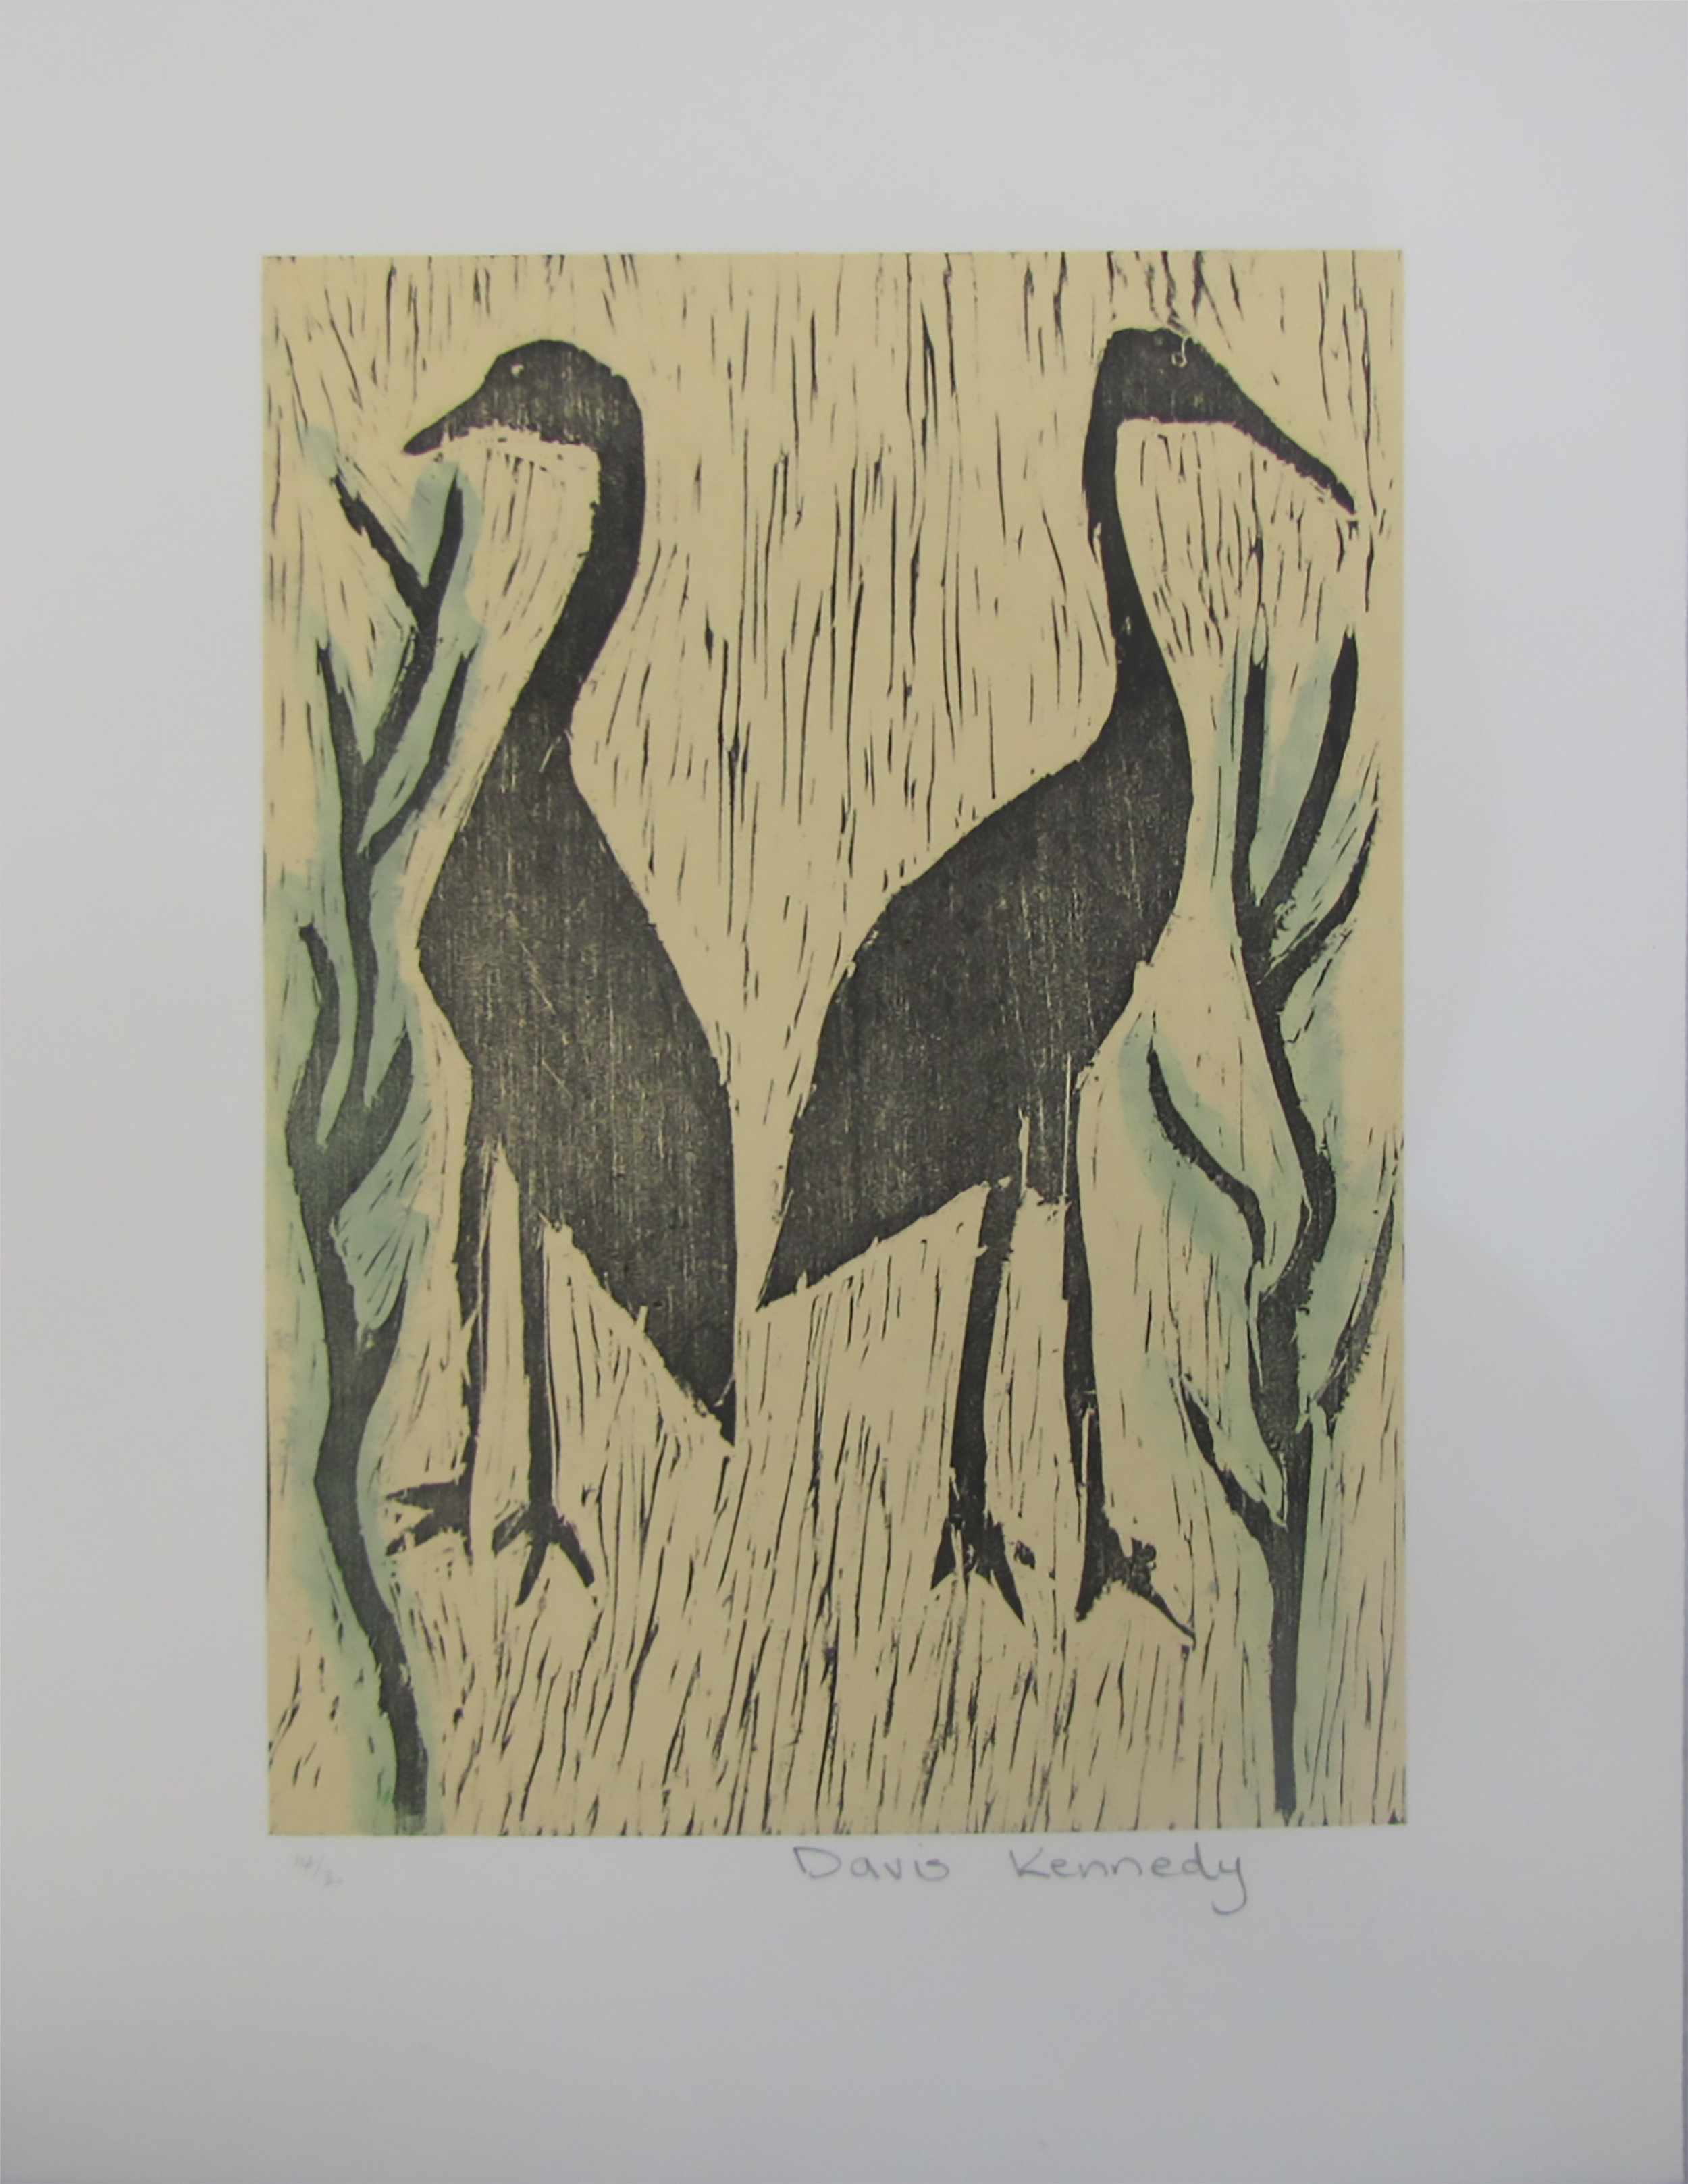 Davis Kennedy, Birds. 2013 Woodcut. Exhibition Proof   30 x 21 cm. $220 unframed.  Editions 12/30, 13/30, 14/30 & 16/30 (unframed) available